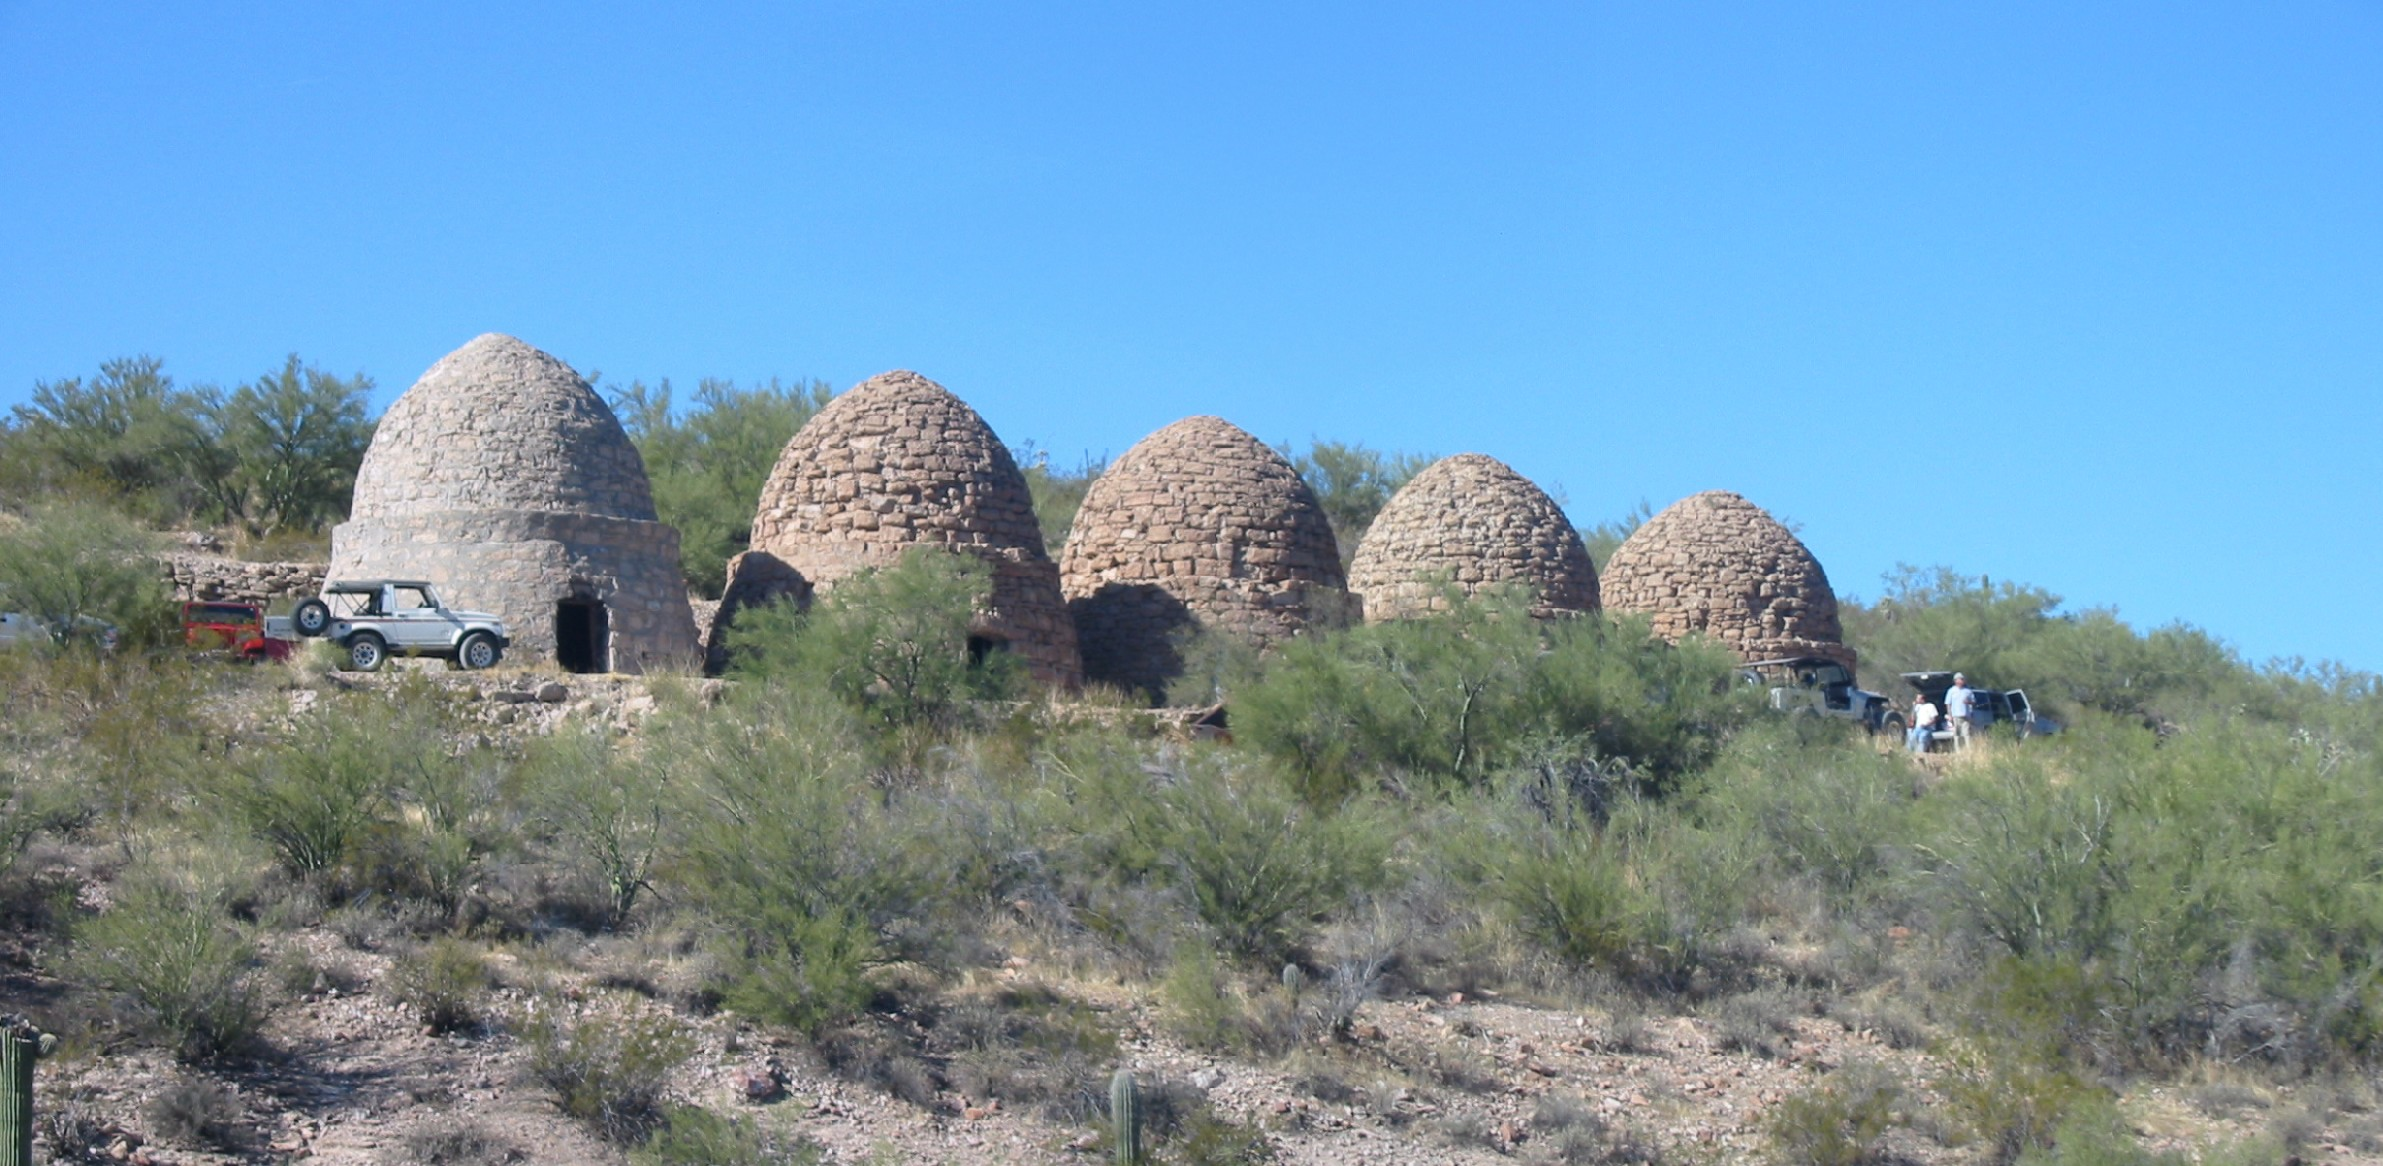 Coke Ovens - Via Cottonwood & Box Canyon, AZ | HikeArizona